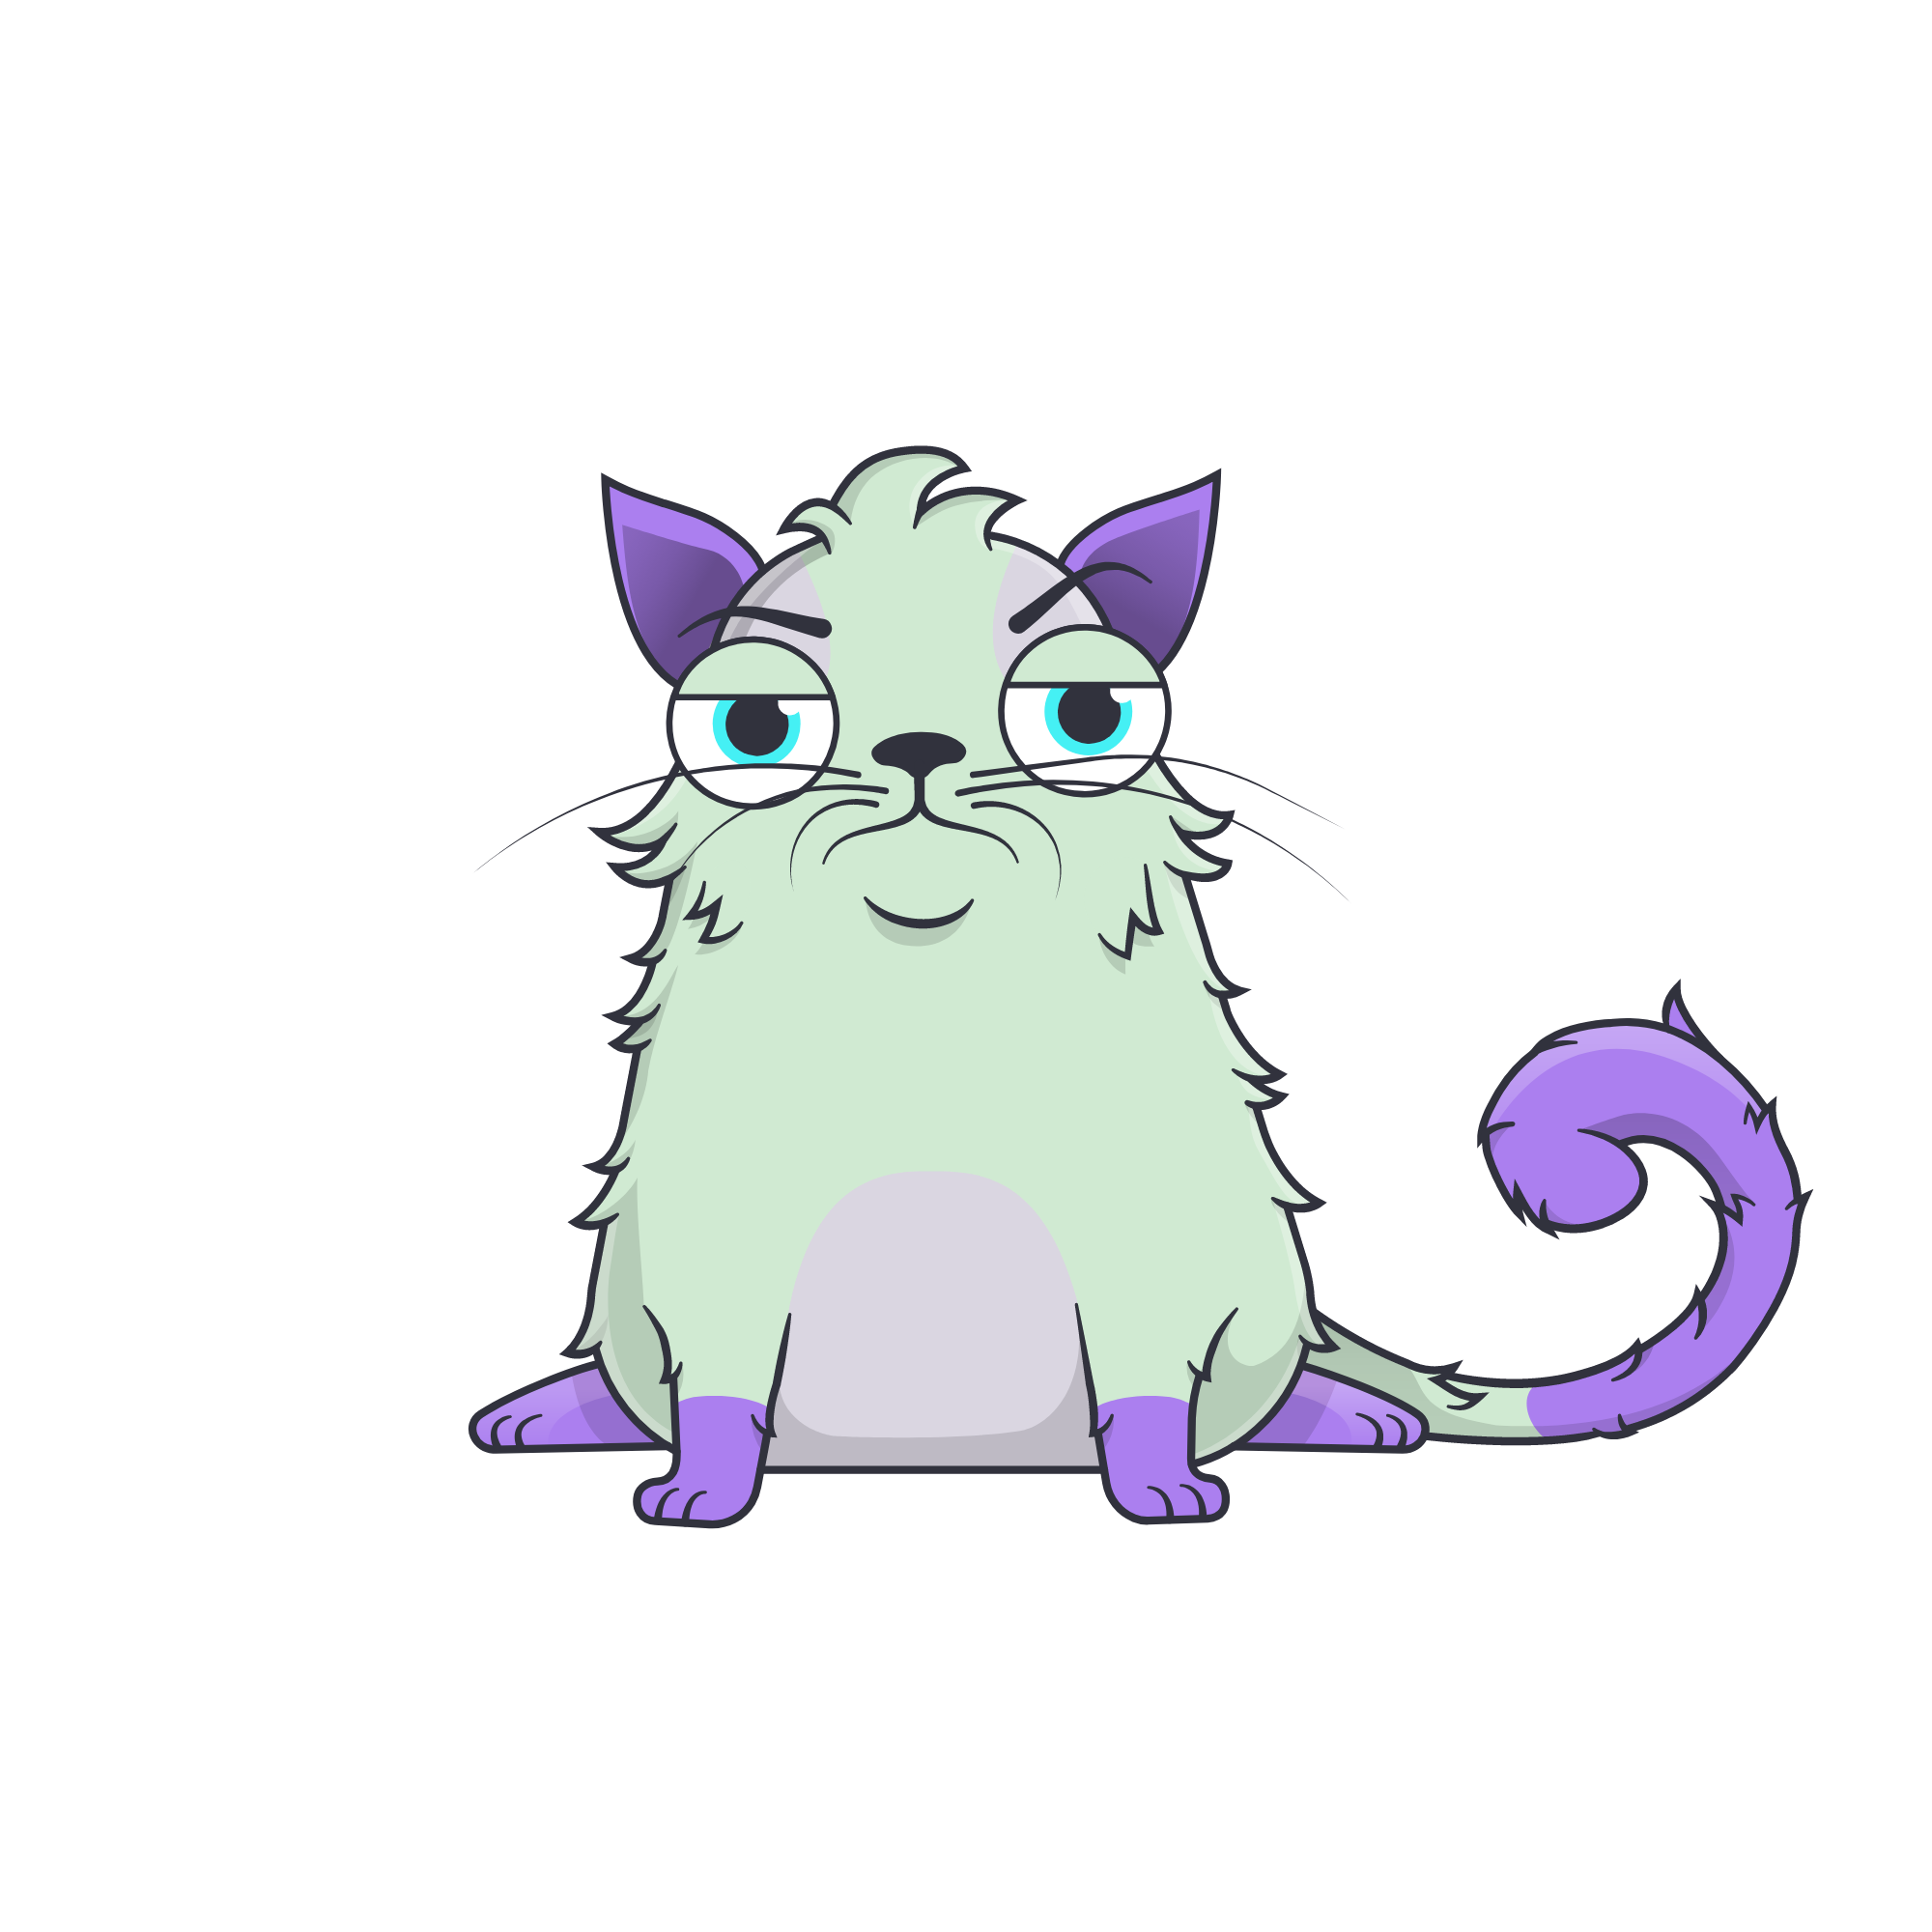 cryptokitty #1950737